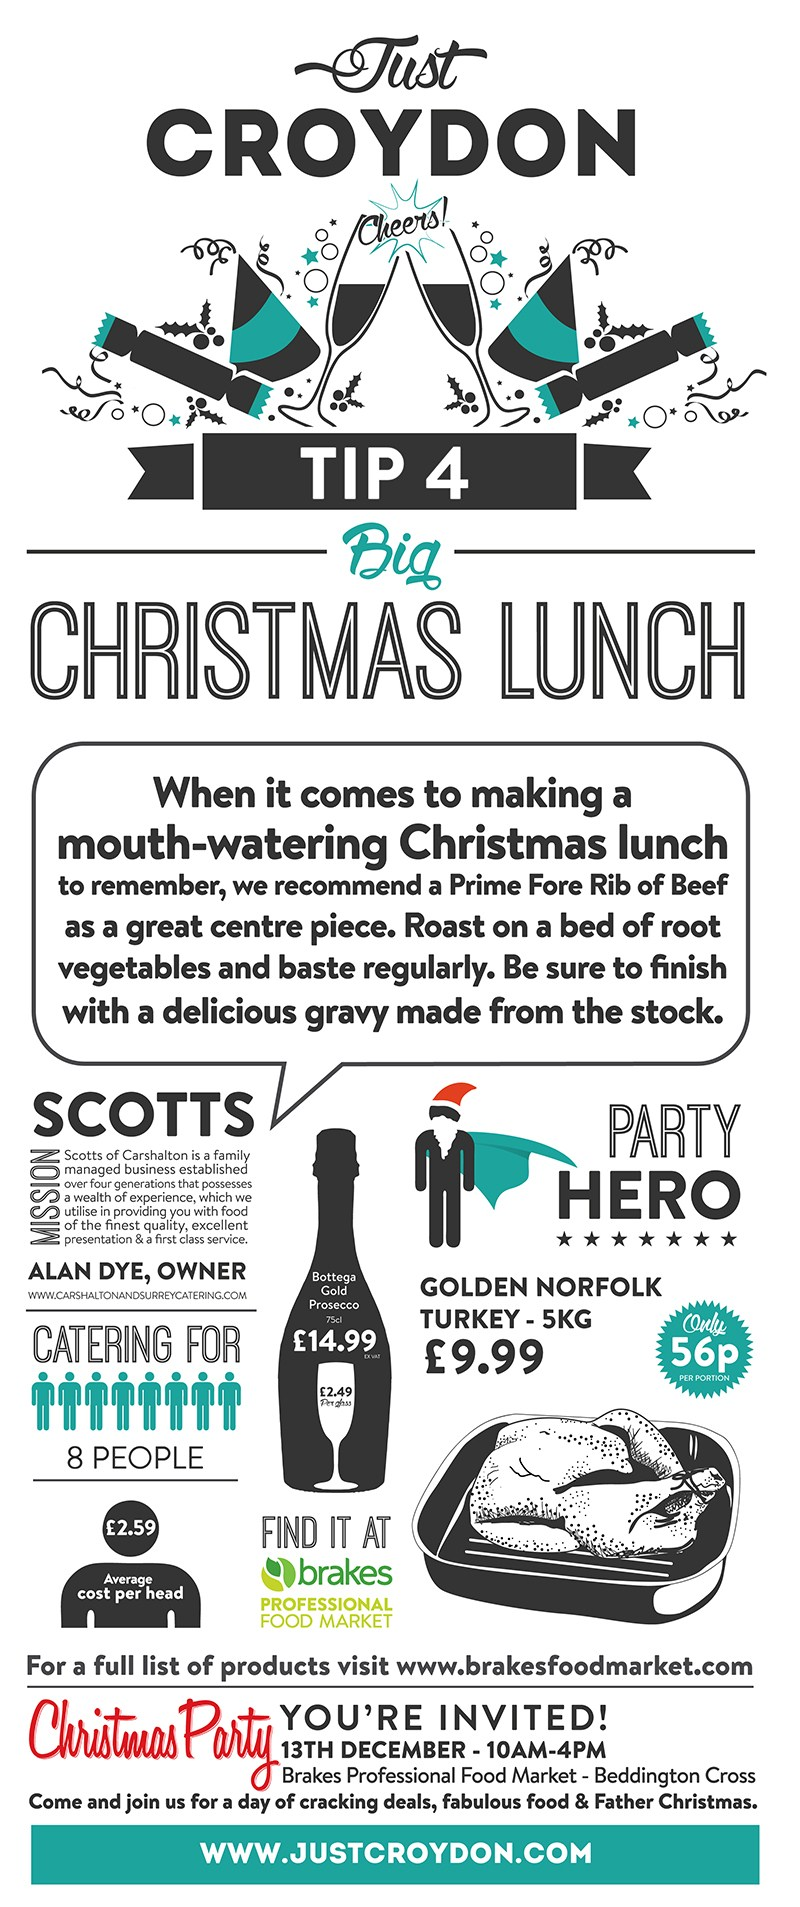 Party Tip 4: Big Christmas Lunch